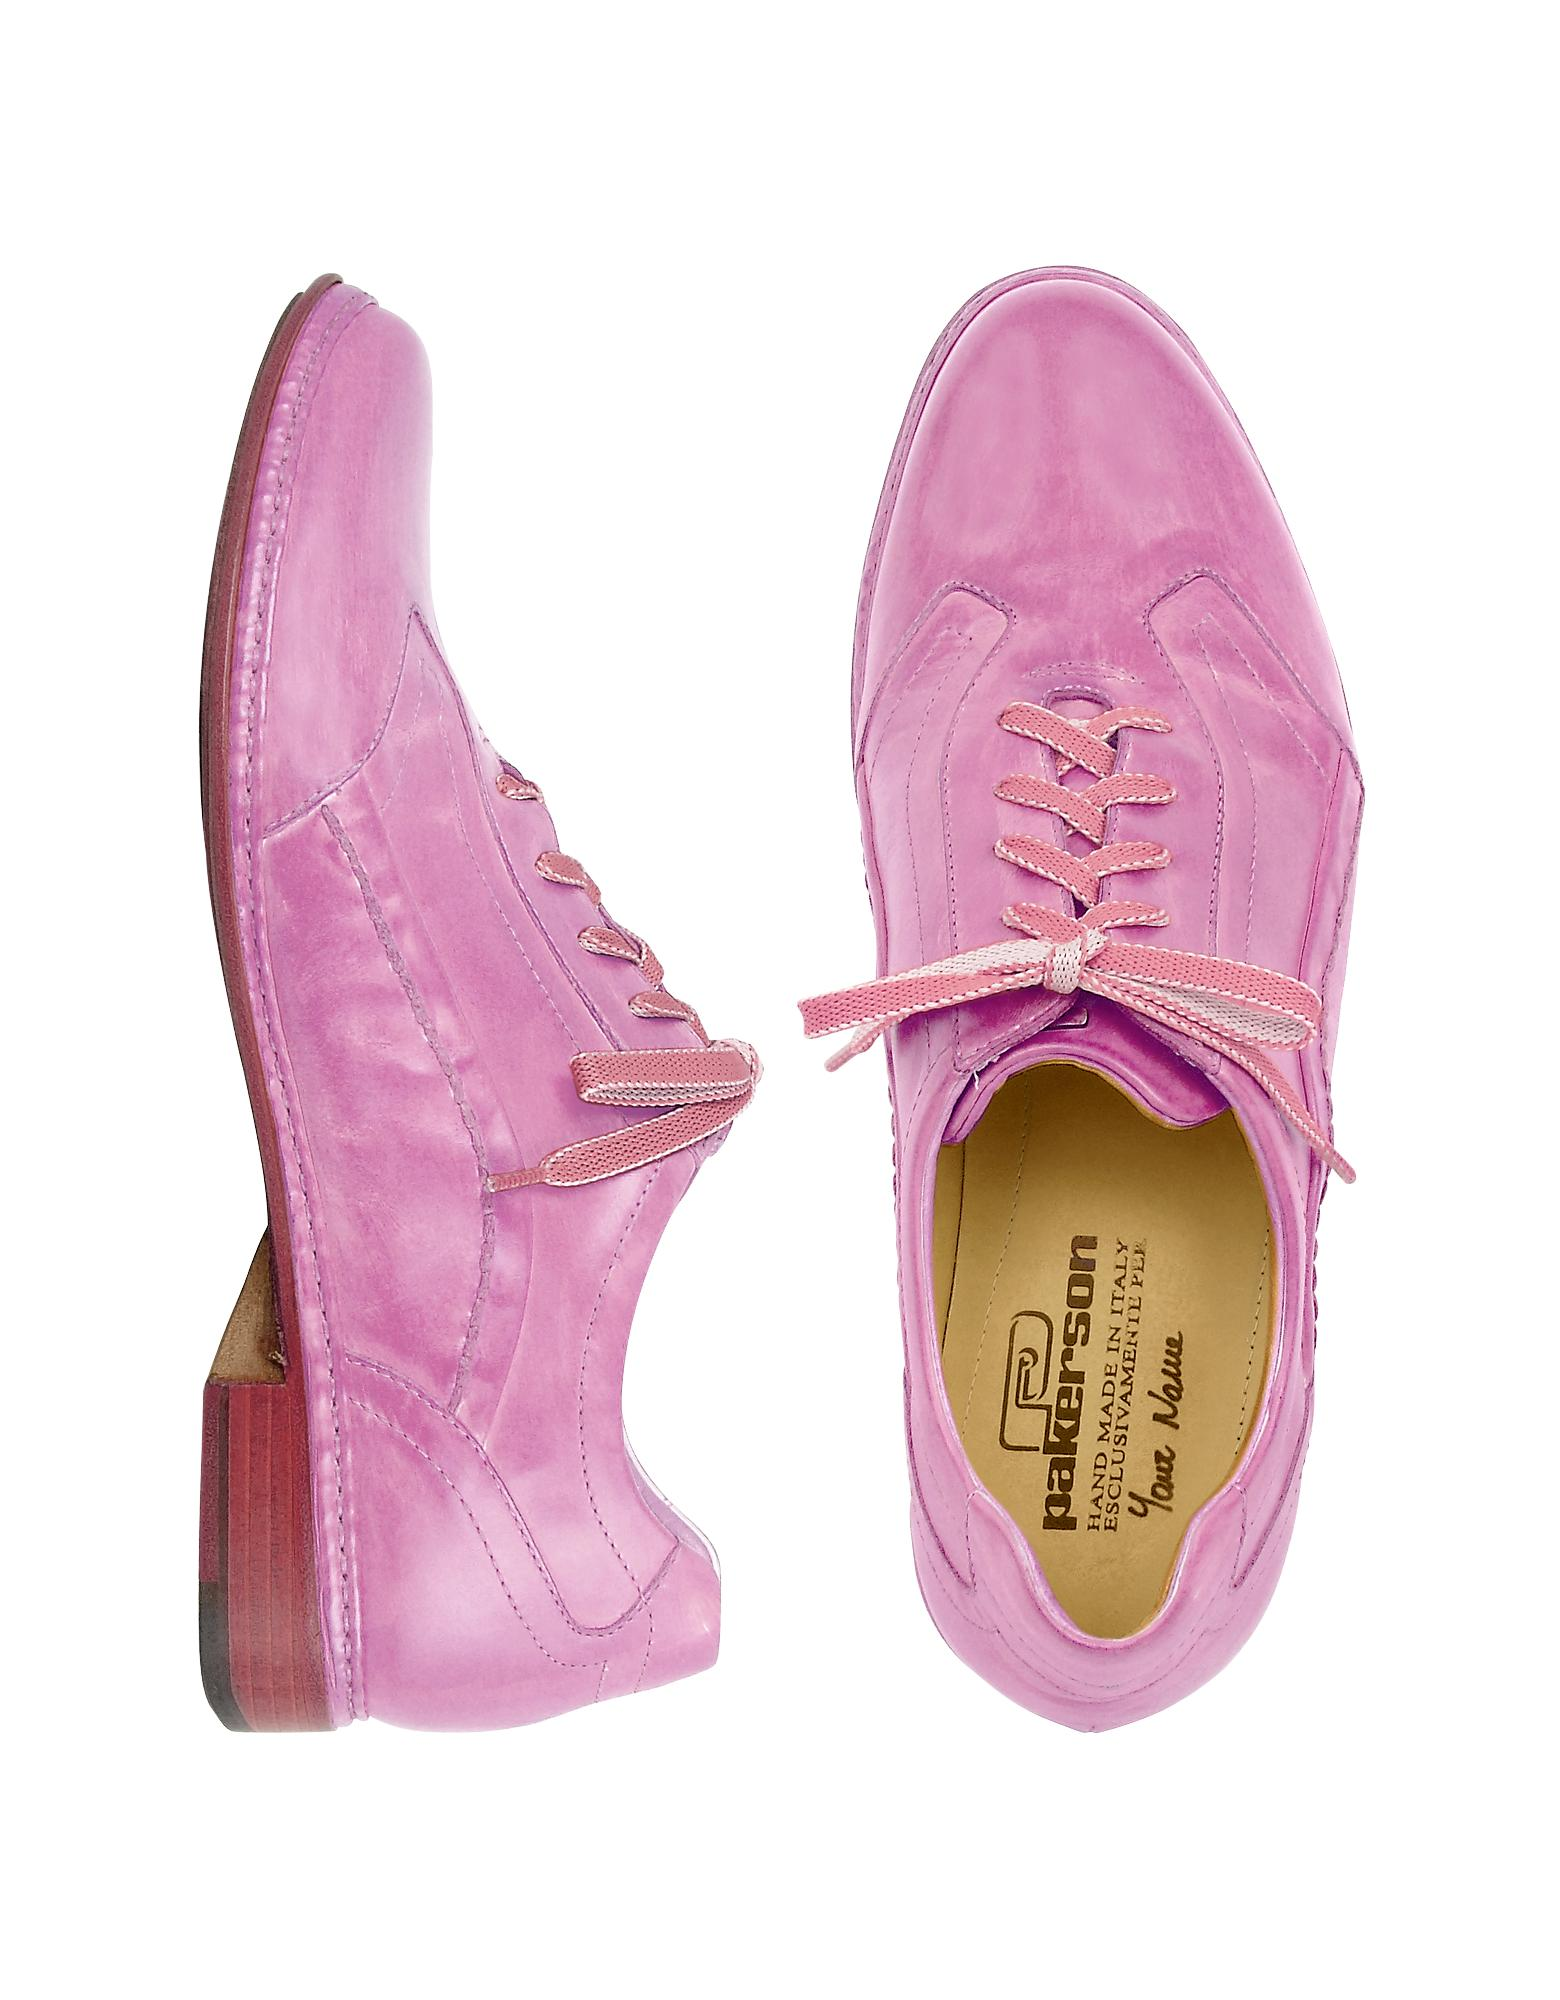 Pink Italian Handmade Leather Lace-up Shoes